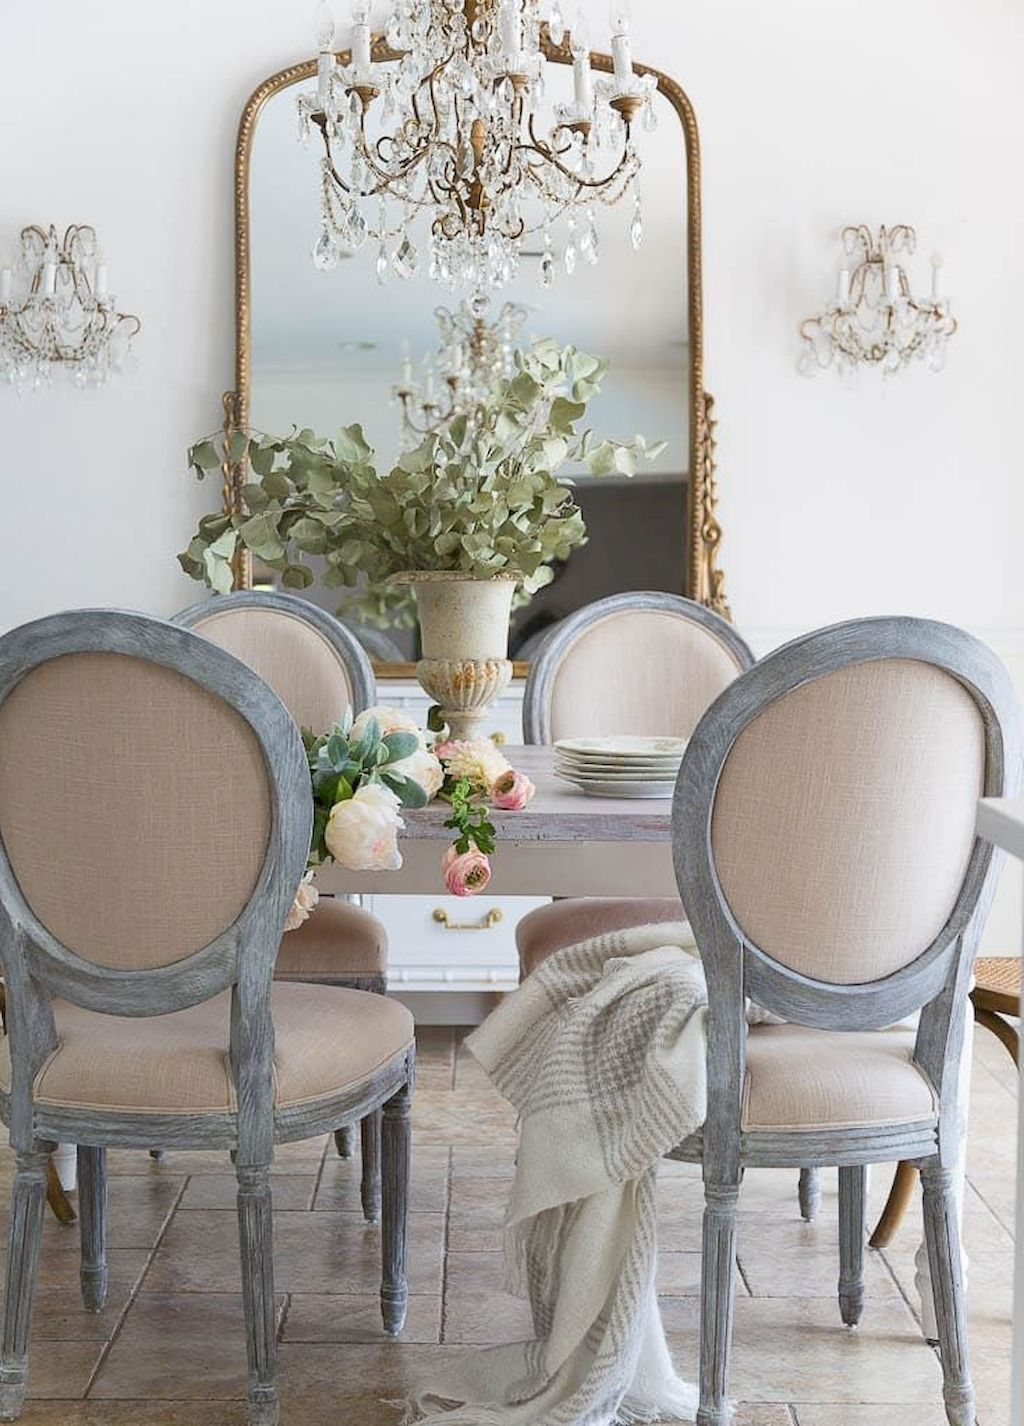 65 Gorgeous French Country Dining Room Decor Ideas French Country Dining Room Decor French Country Dining Room Country House Decor